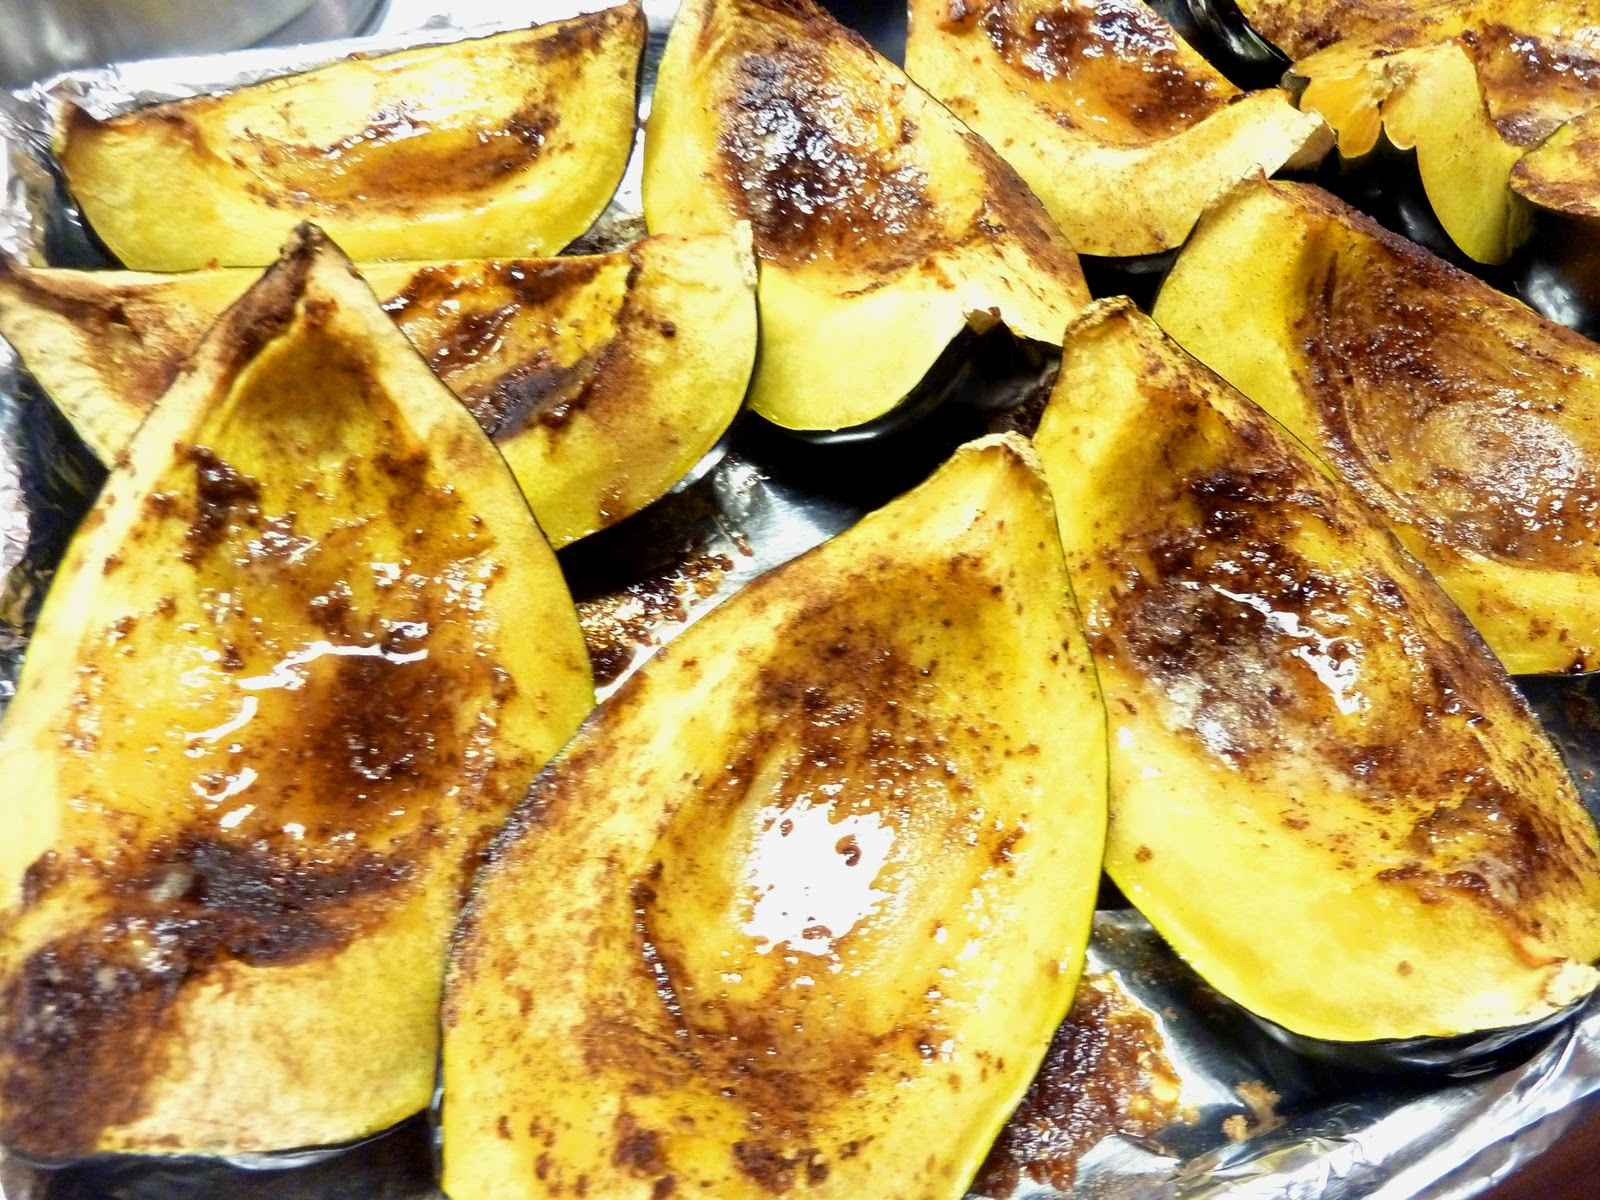 Dinner with Denise: Roasted Acorn Squash